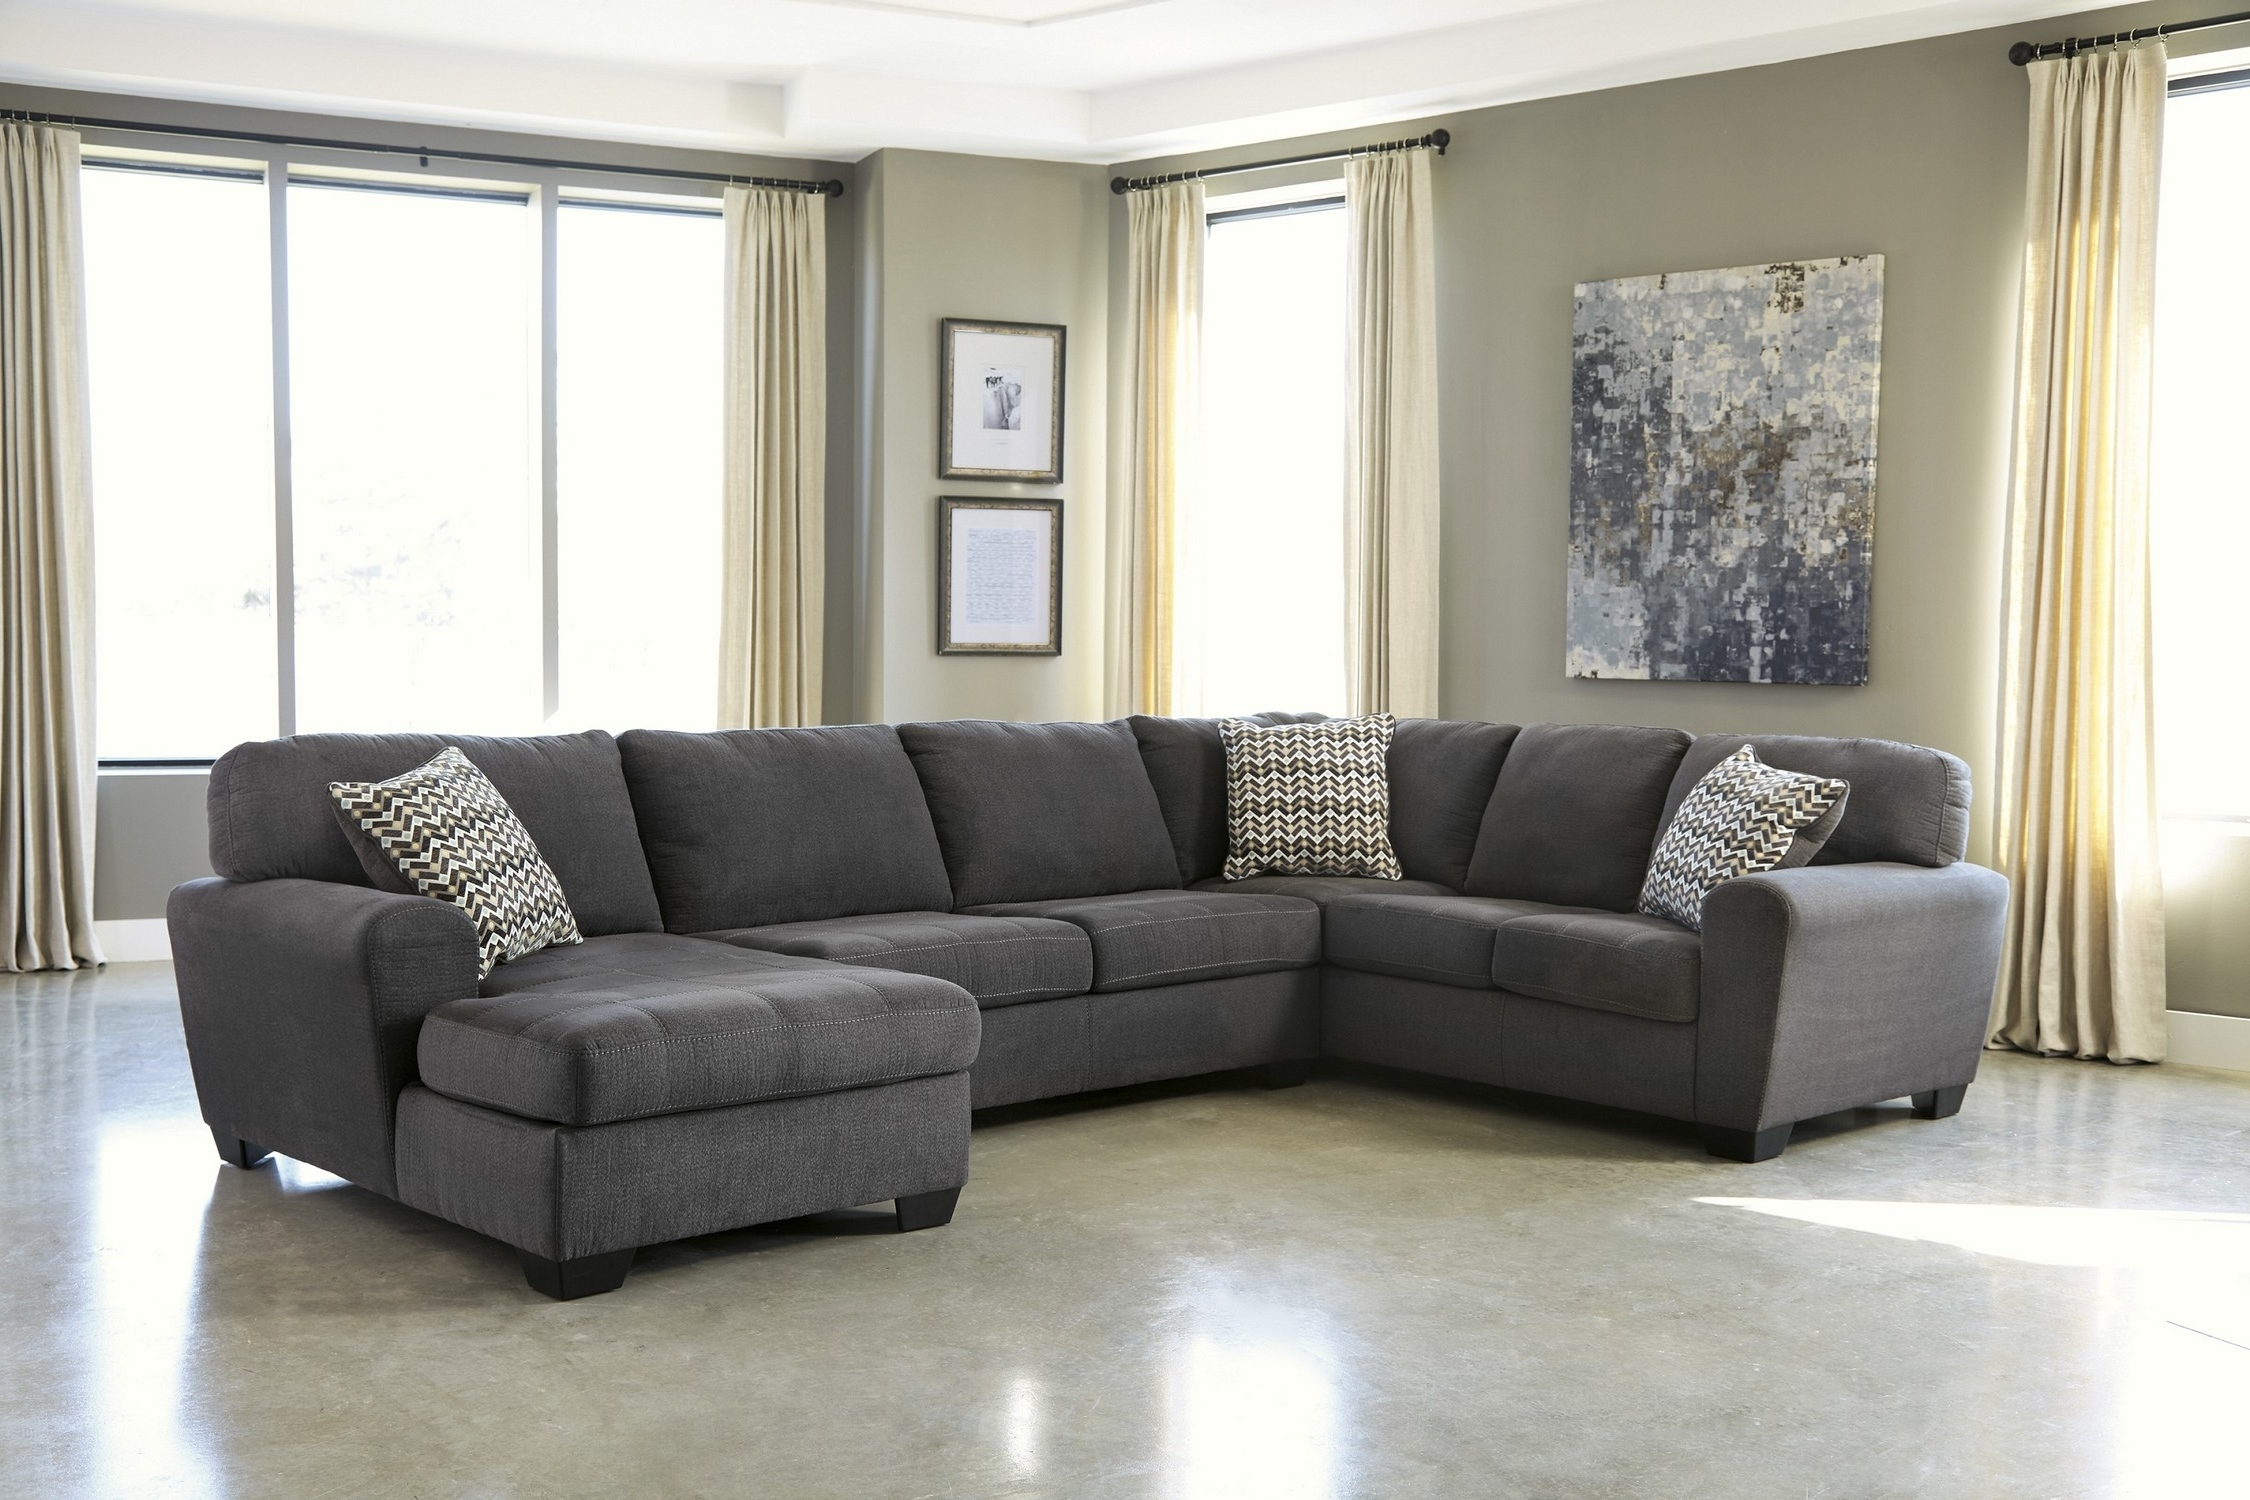 Popular Sectional Sofas Under 1500 Pertaining To Luxury Charcoal Sectional Sofa 52 On Office Sofa Ideas With (View 6 of 15)